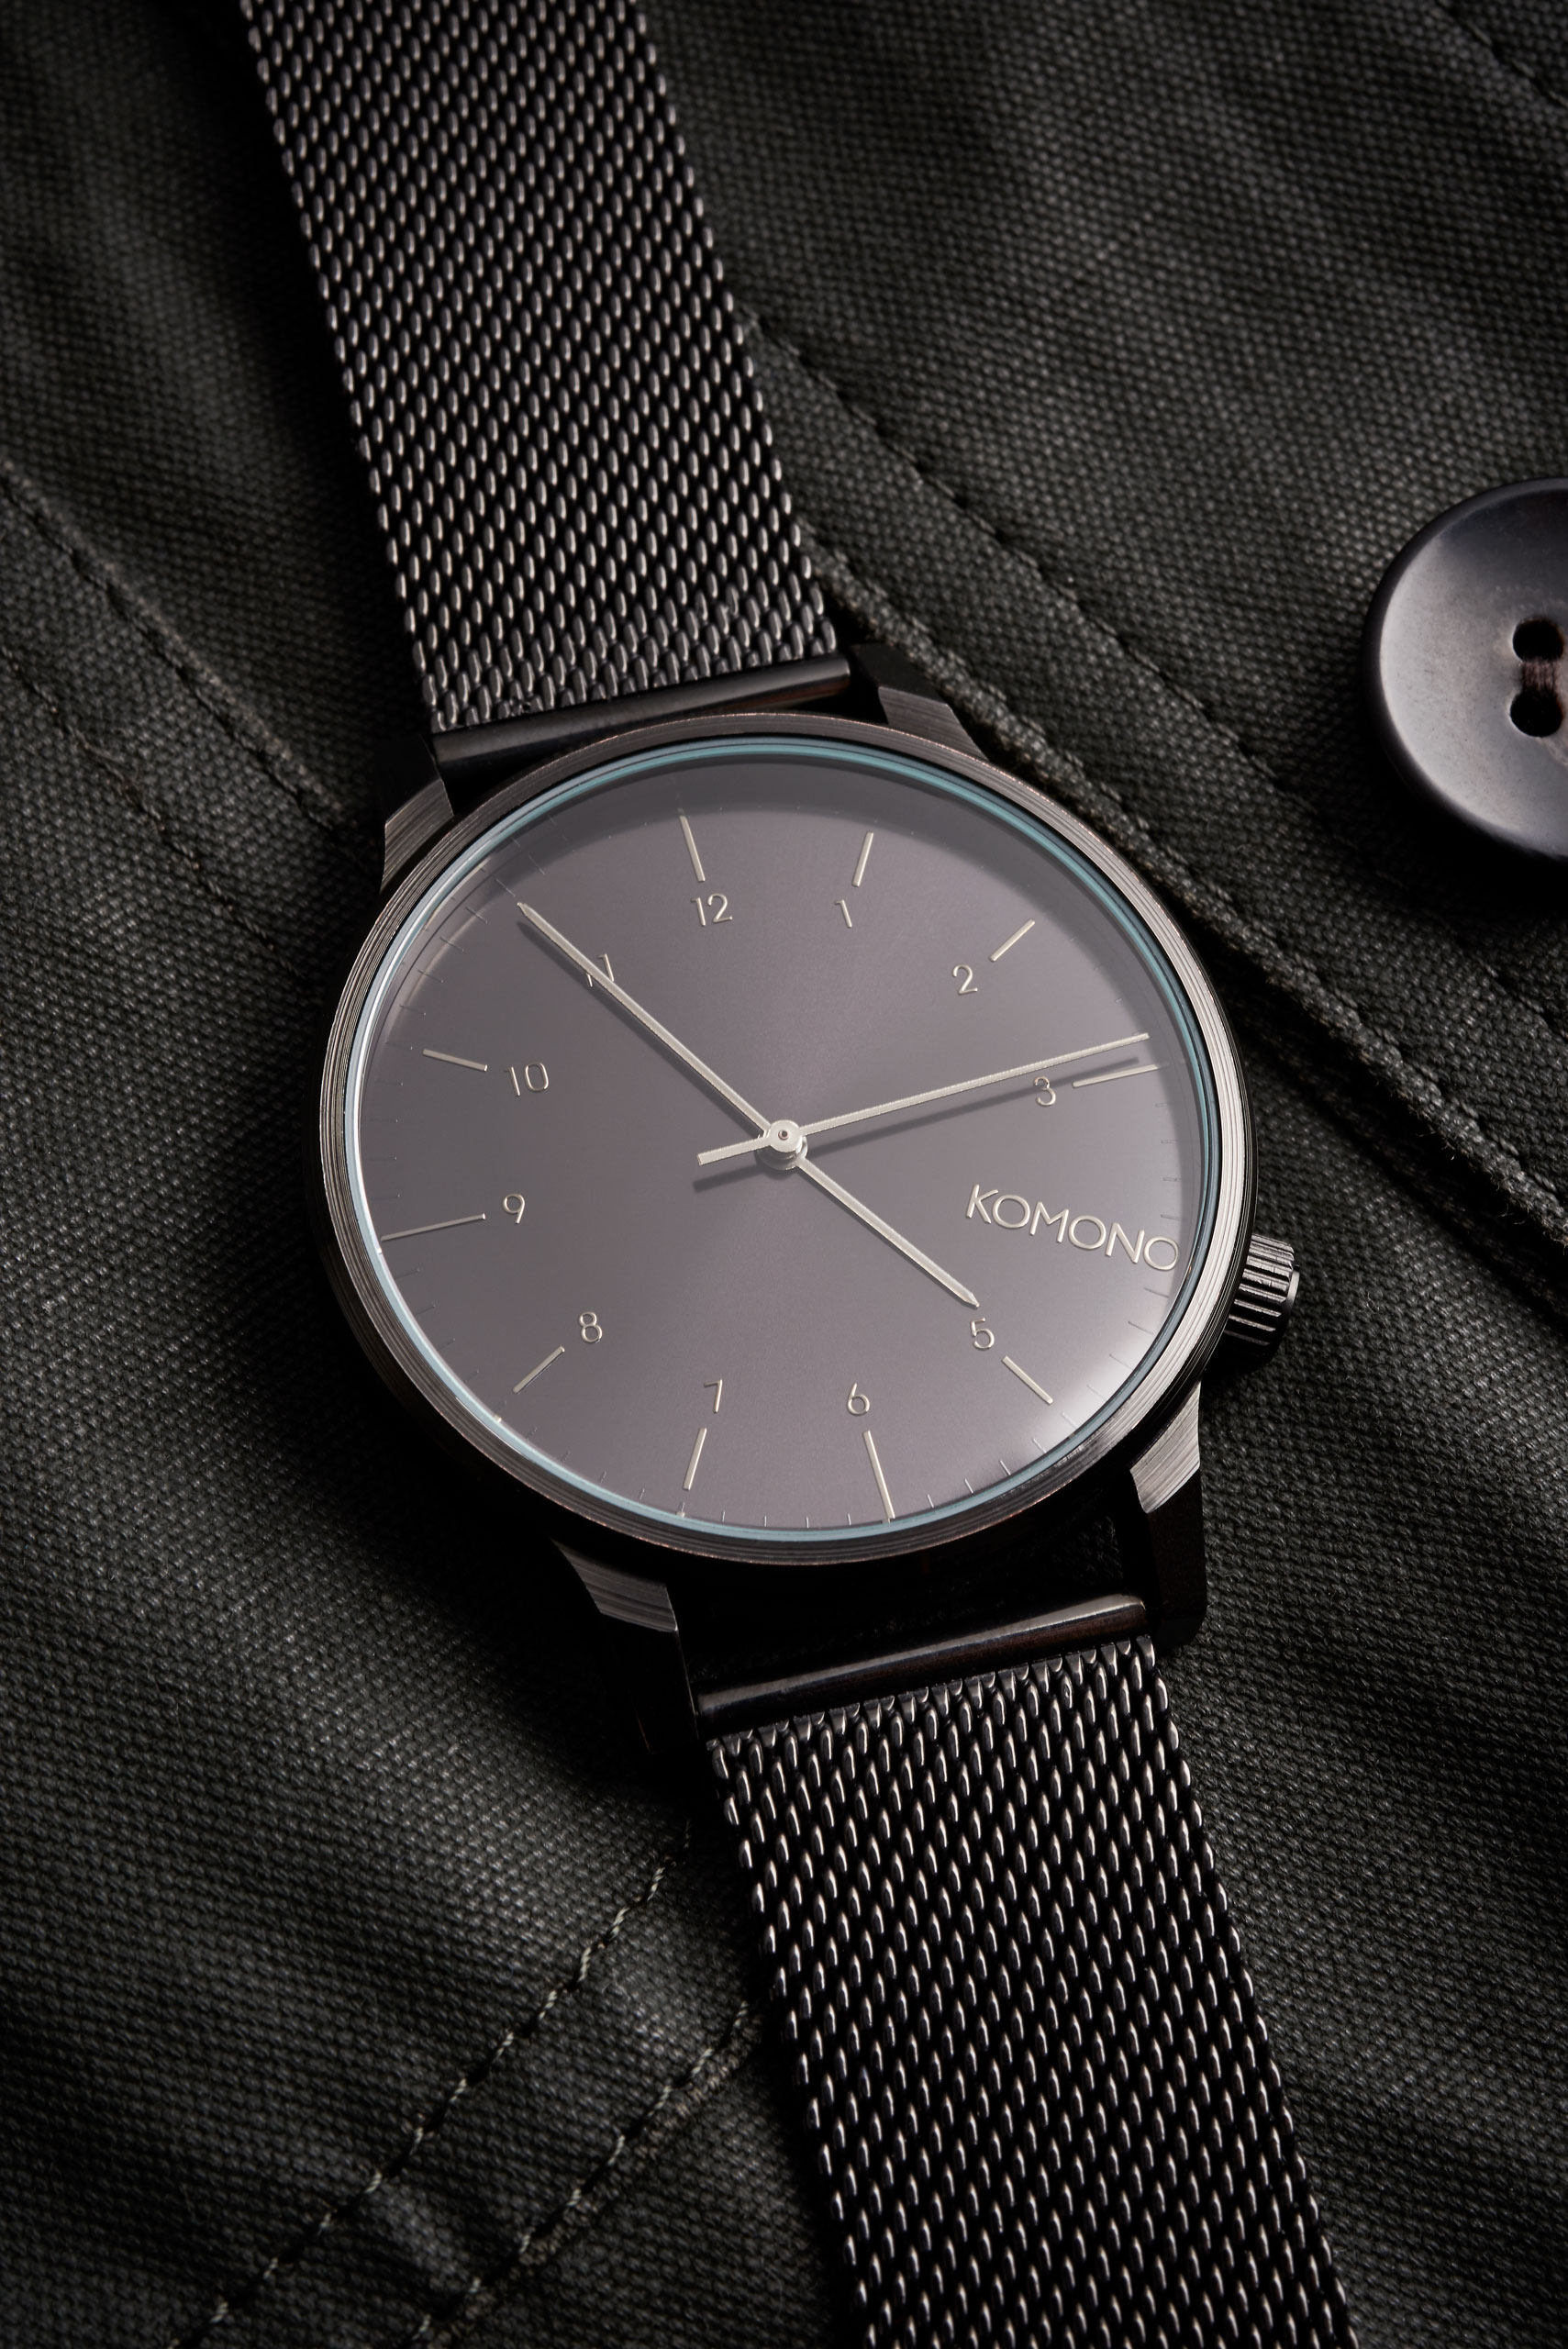 Komono watch on coat